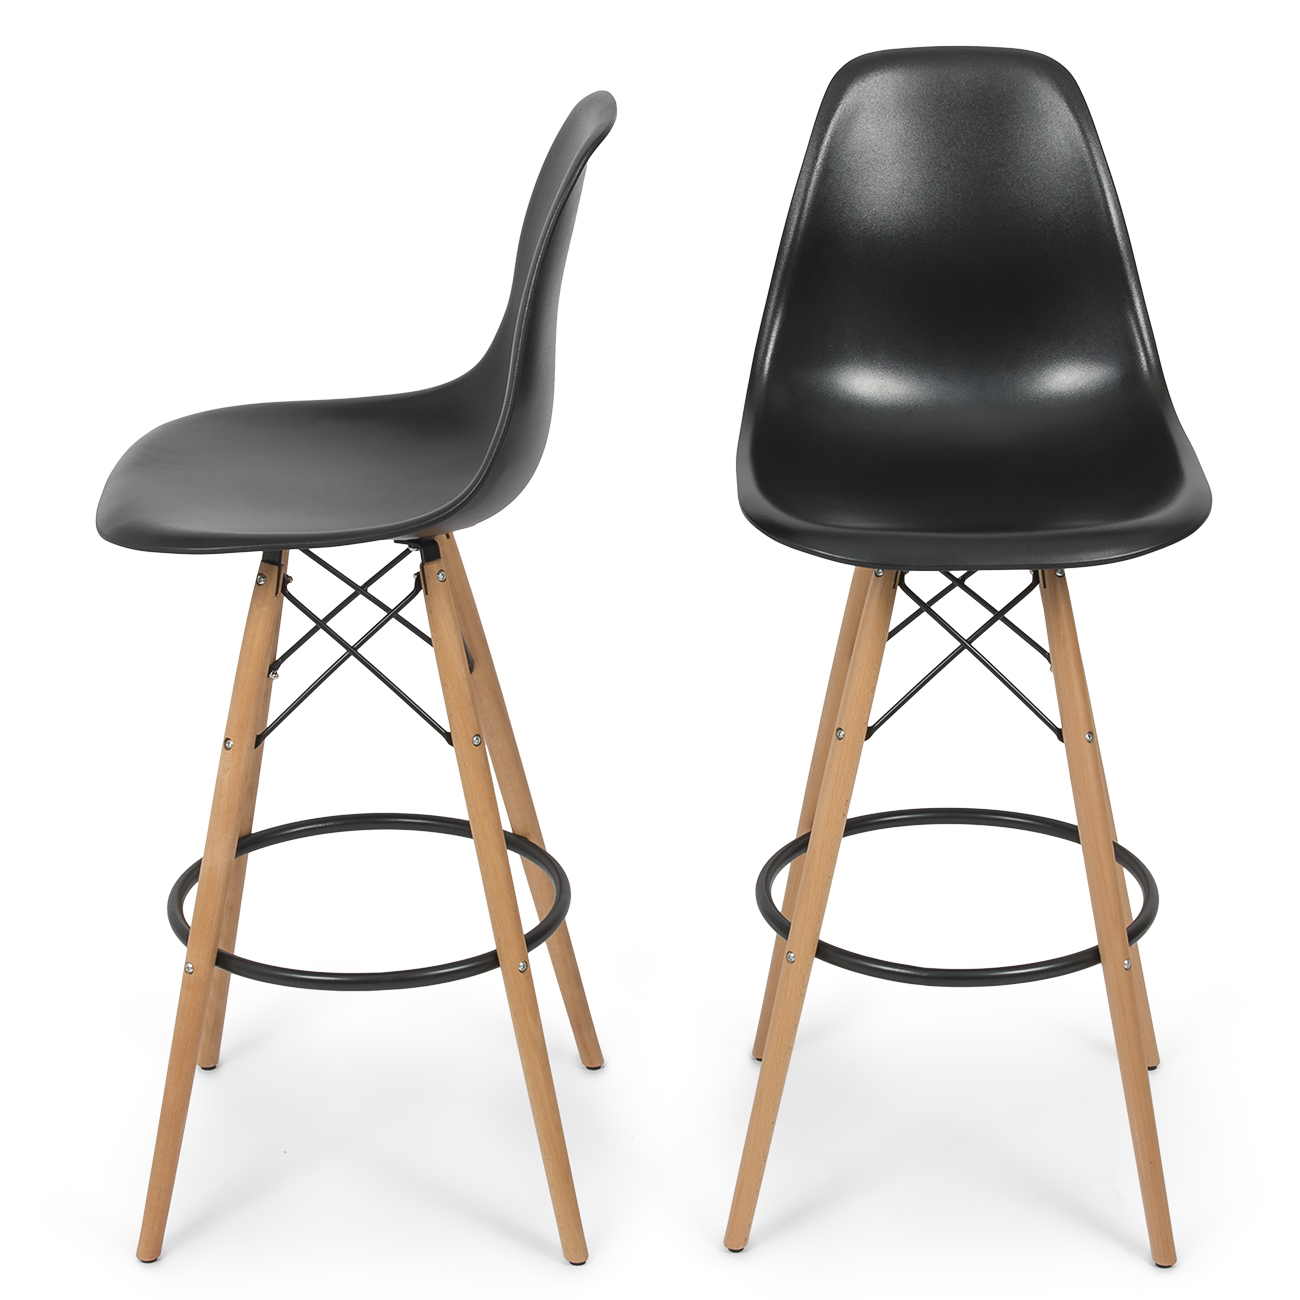 high chair that attaches to counter patio furniture rocking cushions belleze set of 2 bar modern stool style dsw height natural wood legs white